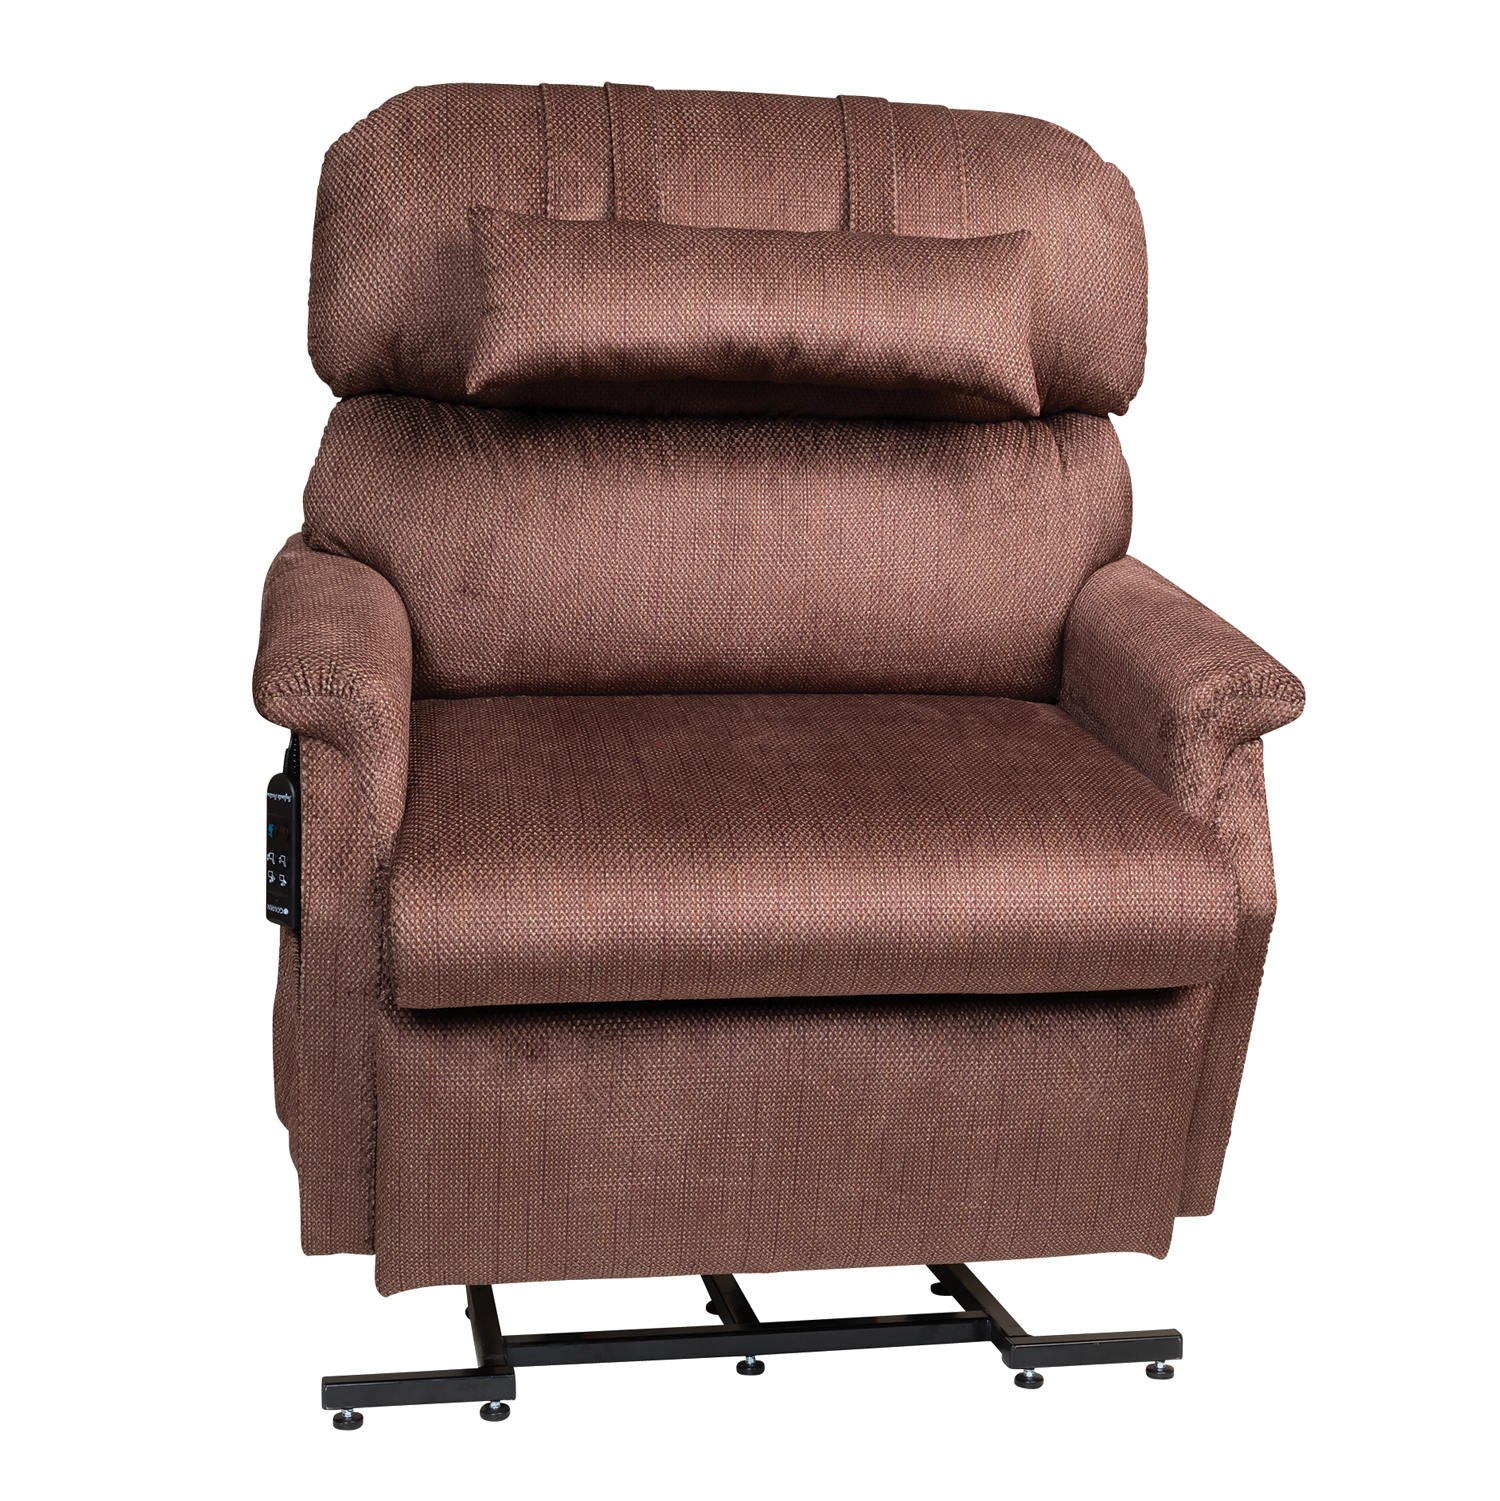 Comforter Extra Wide Lift Chair Lincoln Mobility